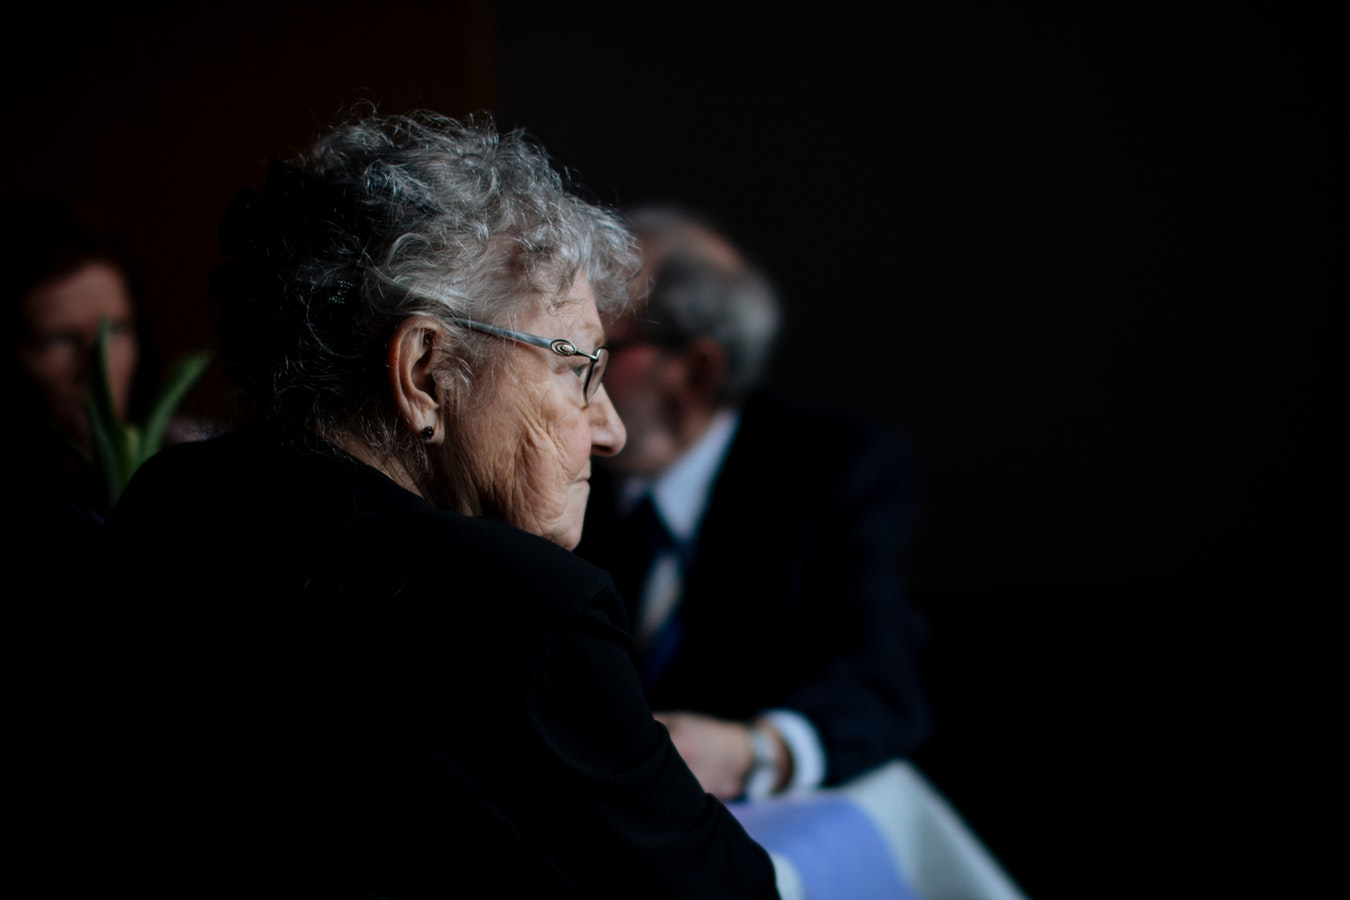 An elderly woman sitting and thinking about parkinsons disease stages.